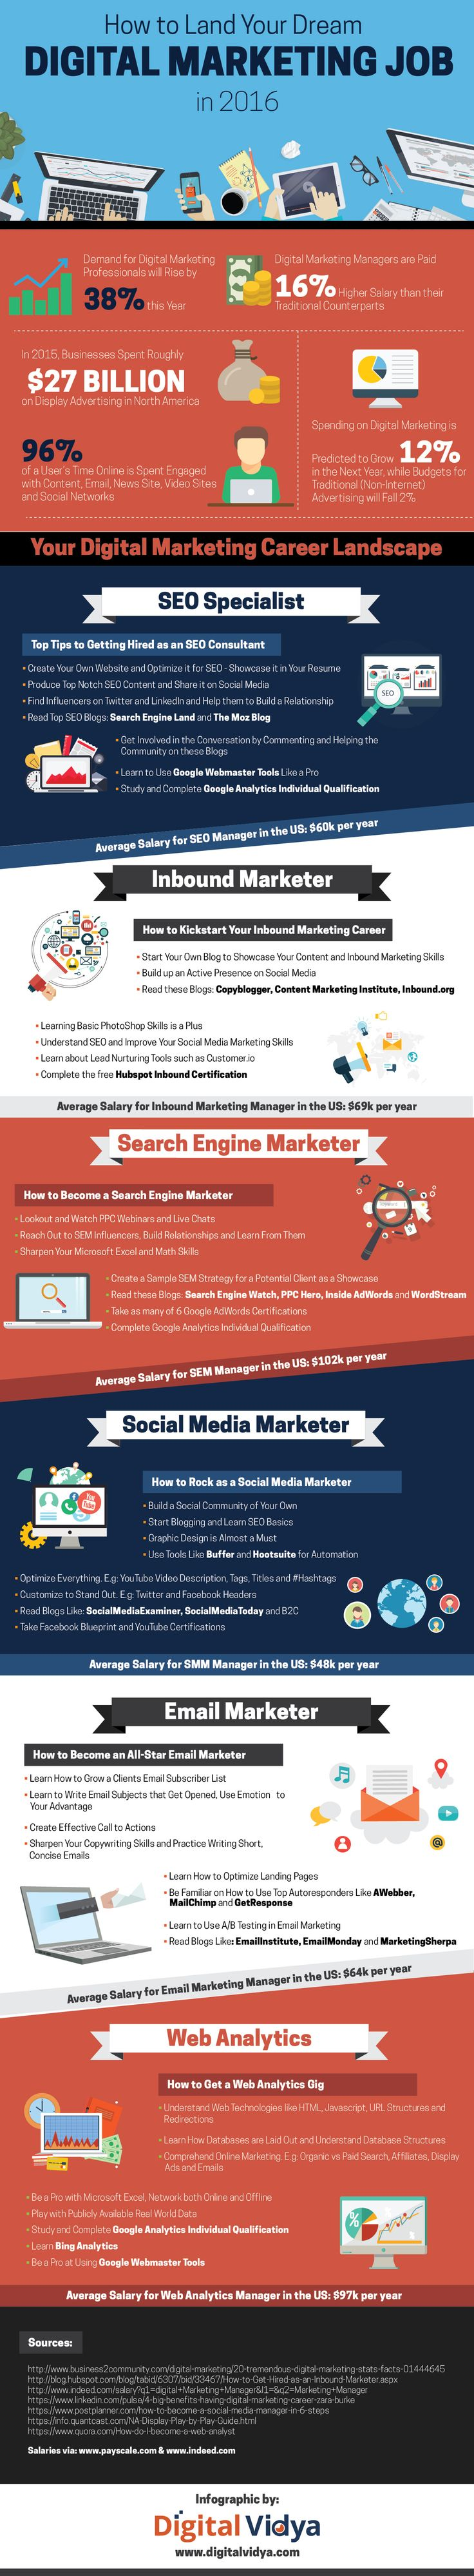 How to Land your Dream Digital Marketing Job in 2016? #Infographic #Career #DigitalMarketing